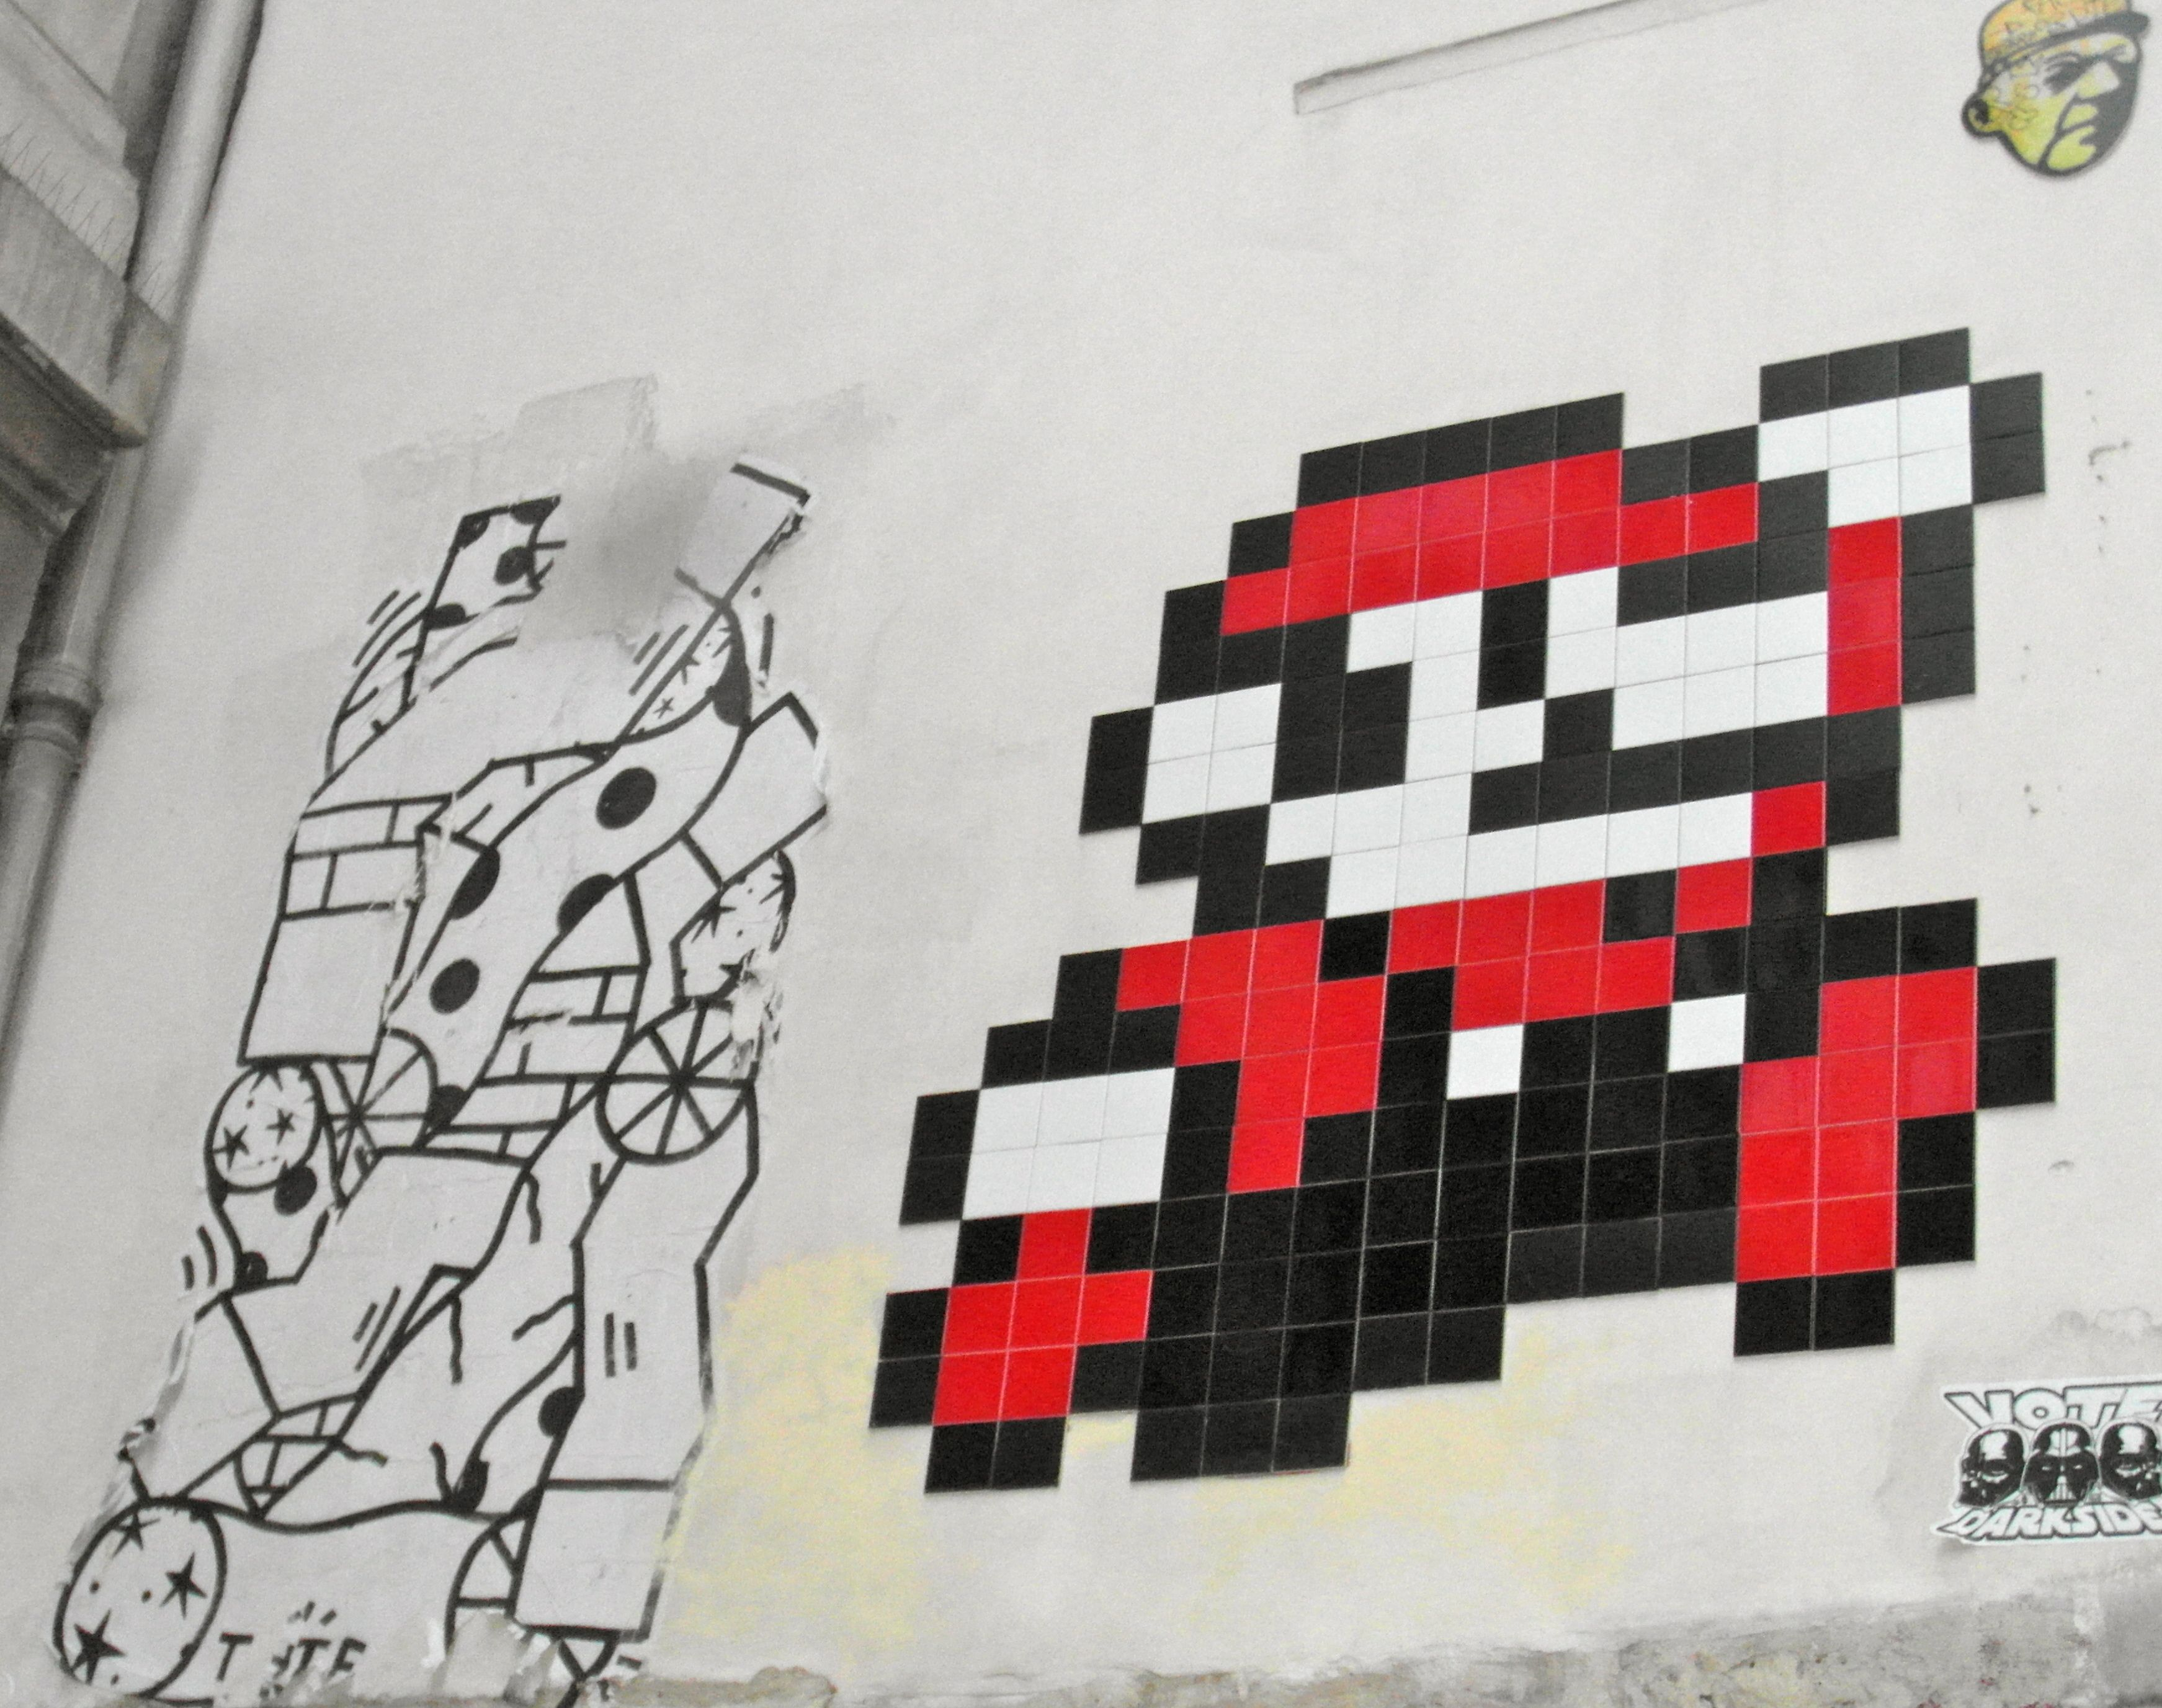 EDOUARD SCARFOGLIO, THTF,SPACE INVADER,MR PEE. Le Marais Paris